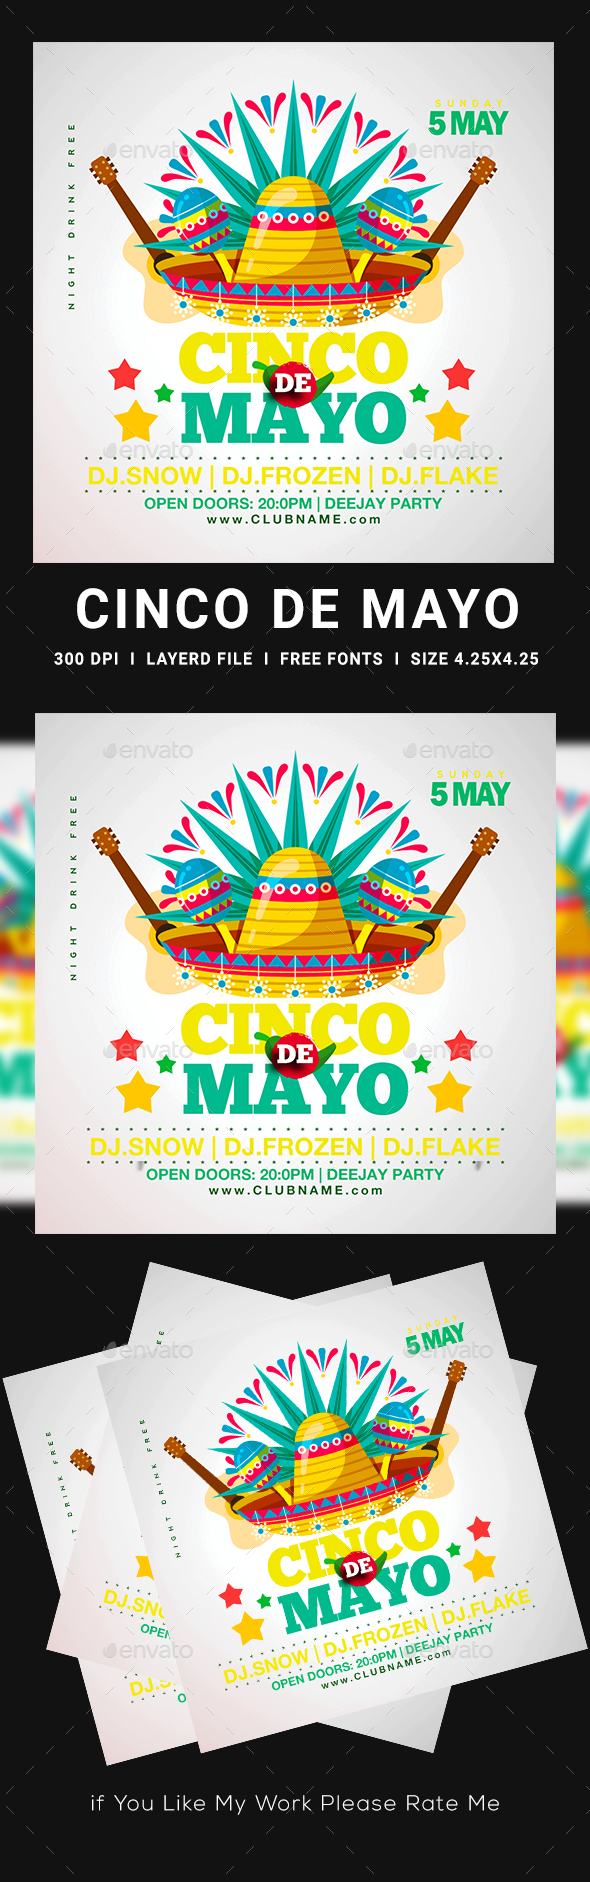 Flyers PSD – Cinco De Mayo Flyer – Download